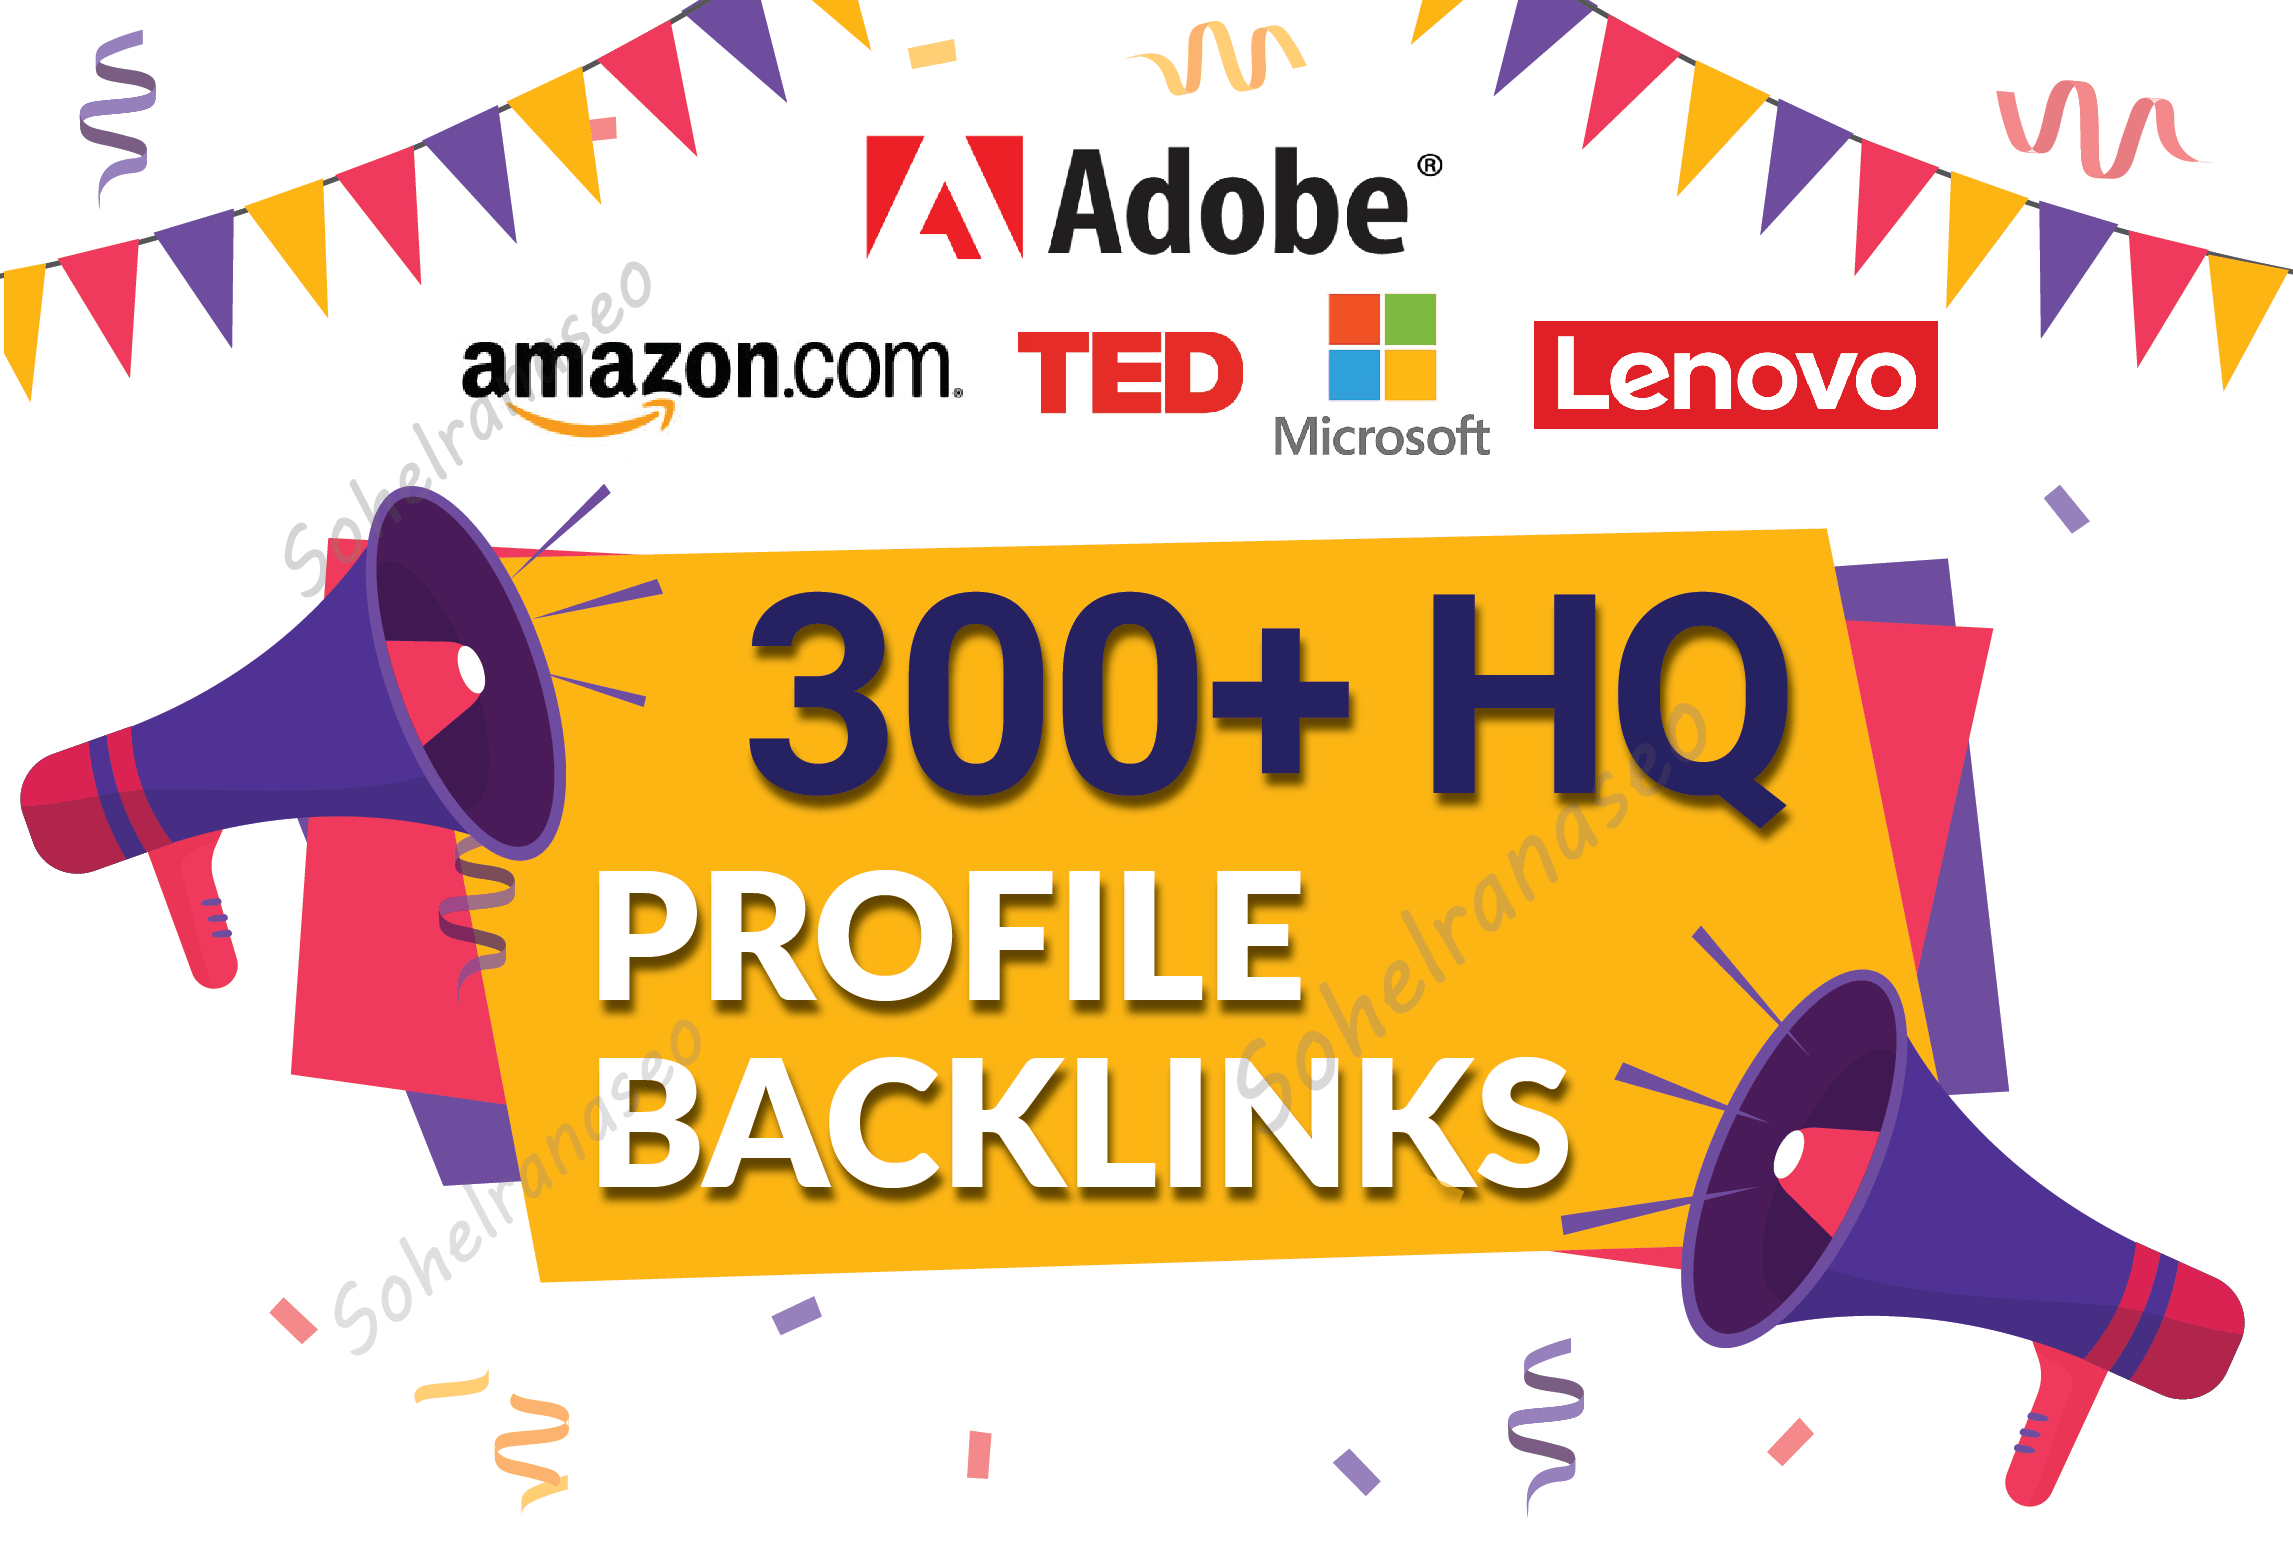 300+HQ social media profile seo backlinks